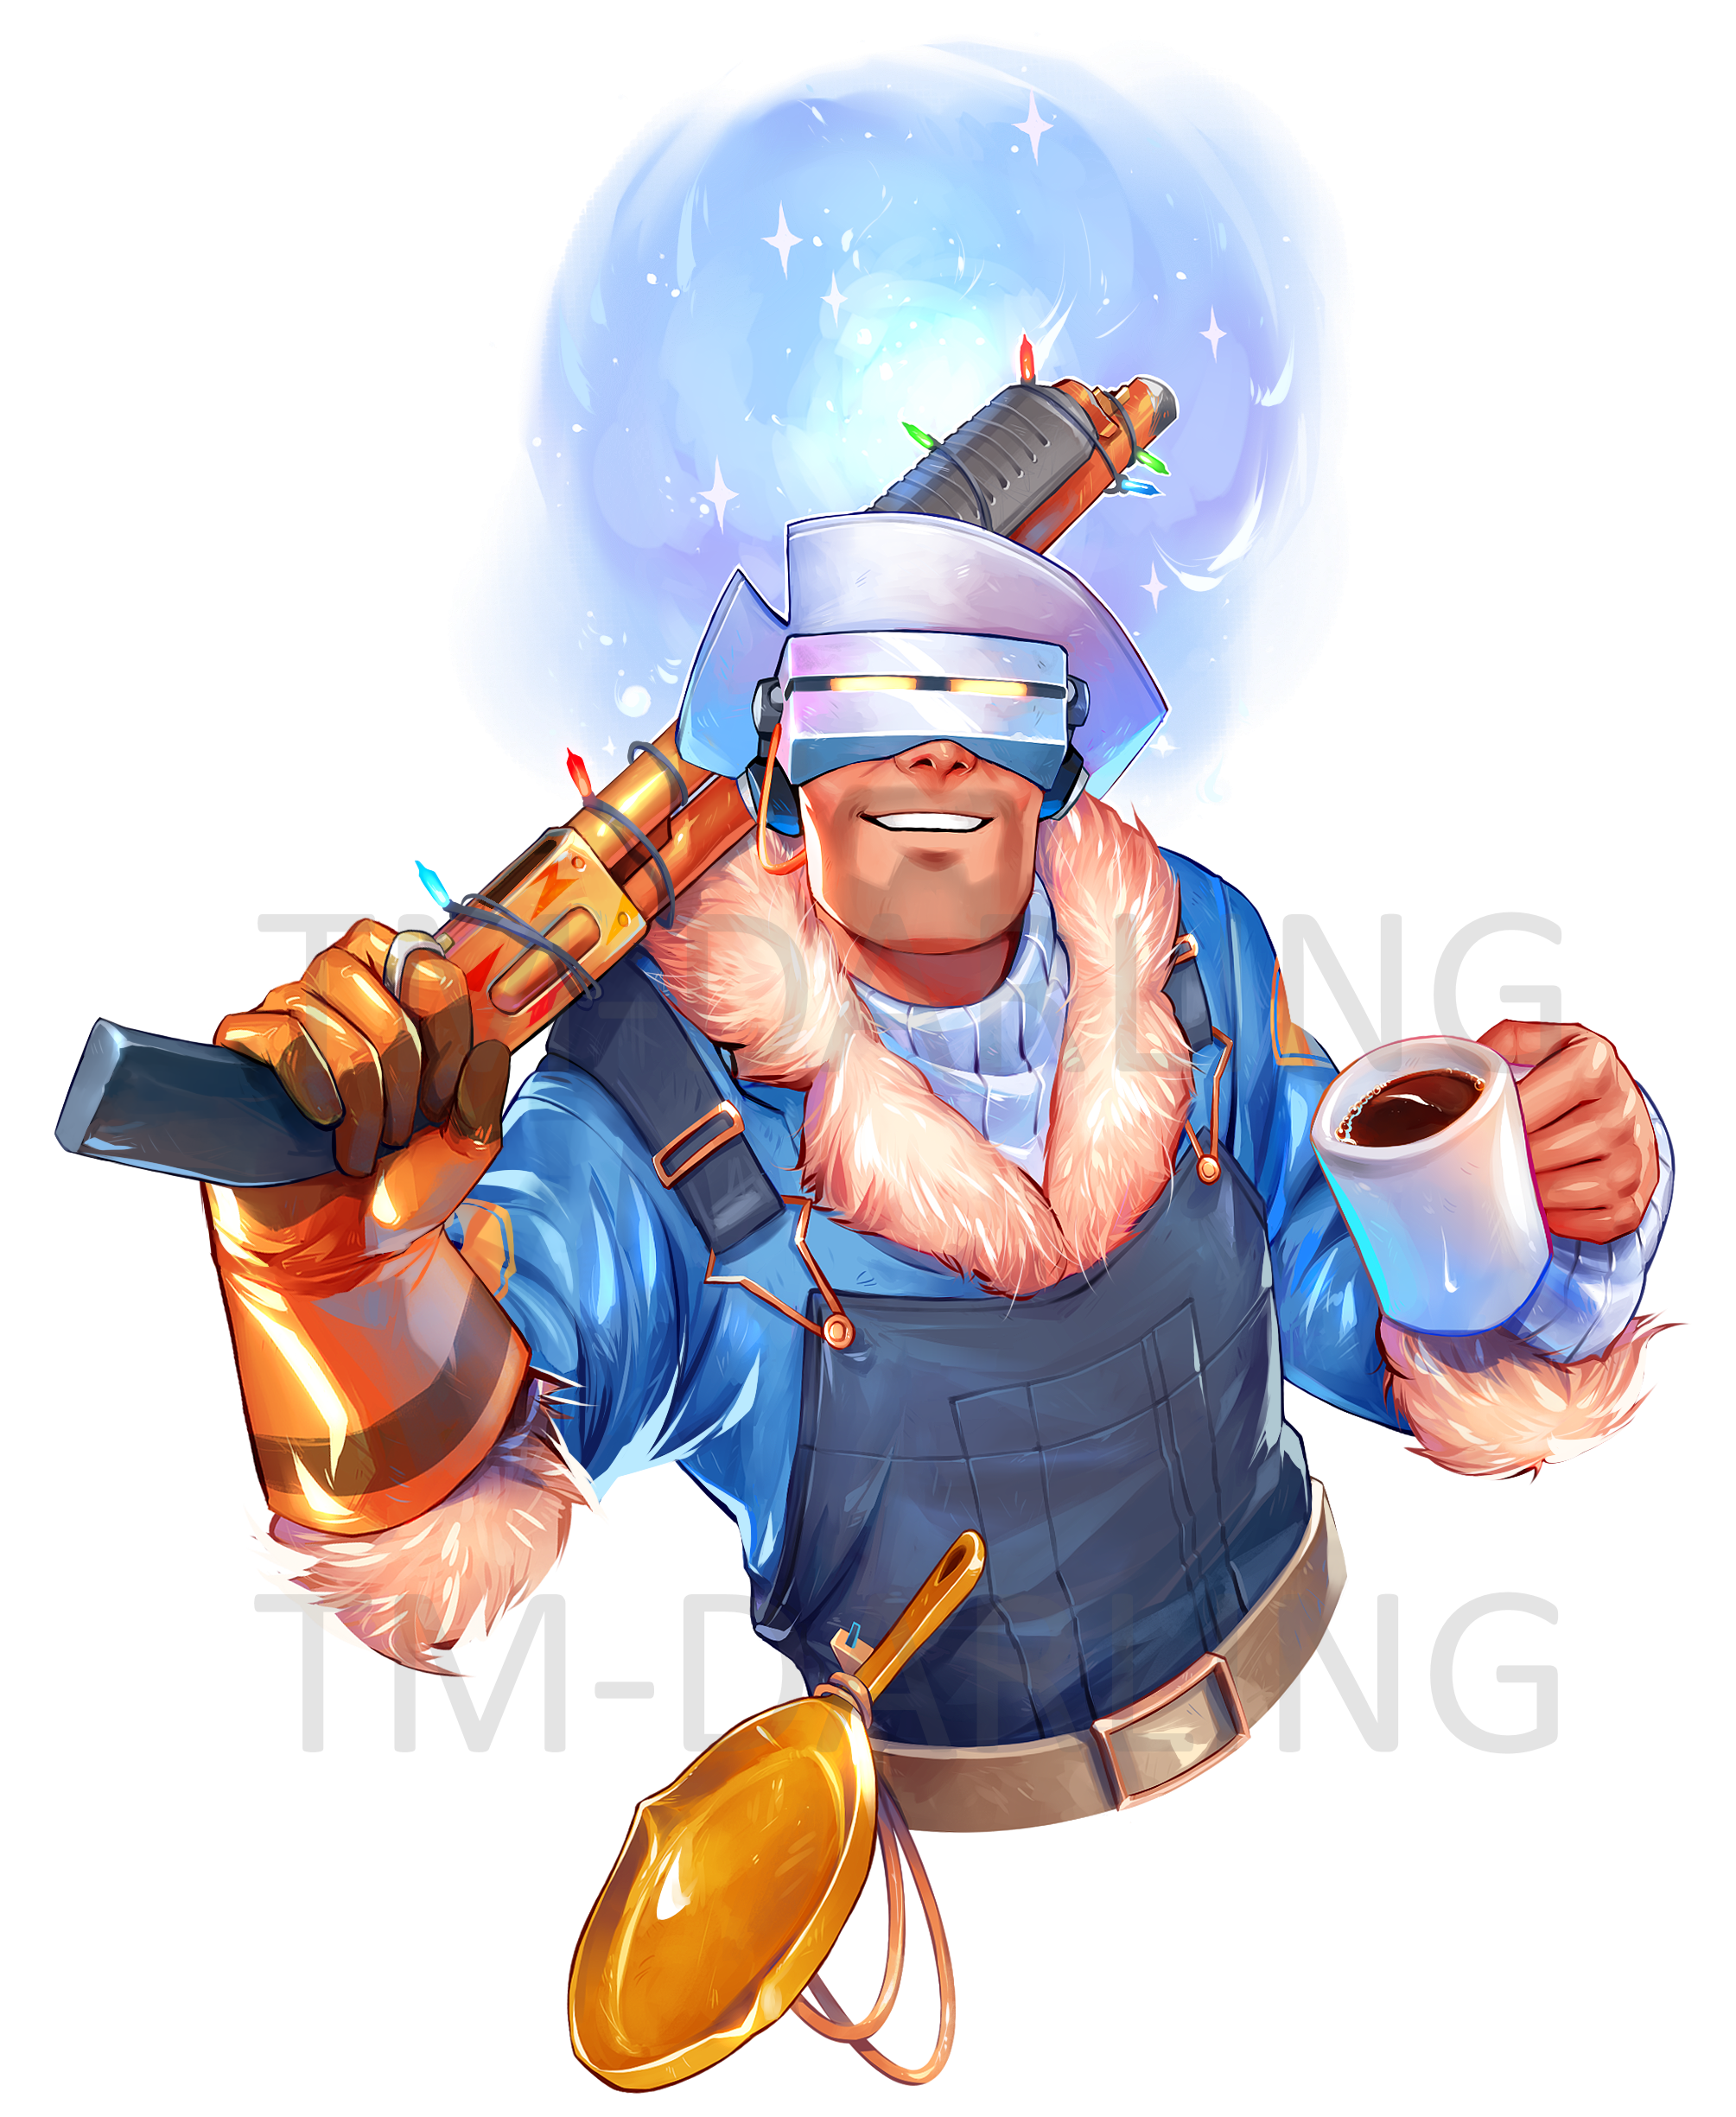 My Engineer Loadout Painted For Me By A Friend Teamfortress2 Steam Tf2 Steamnewrelease Gaming Valve